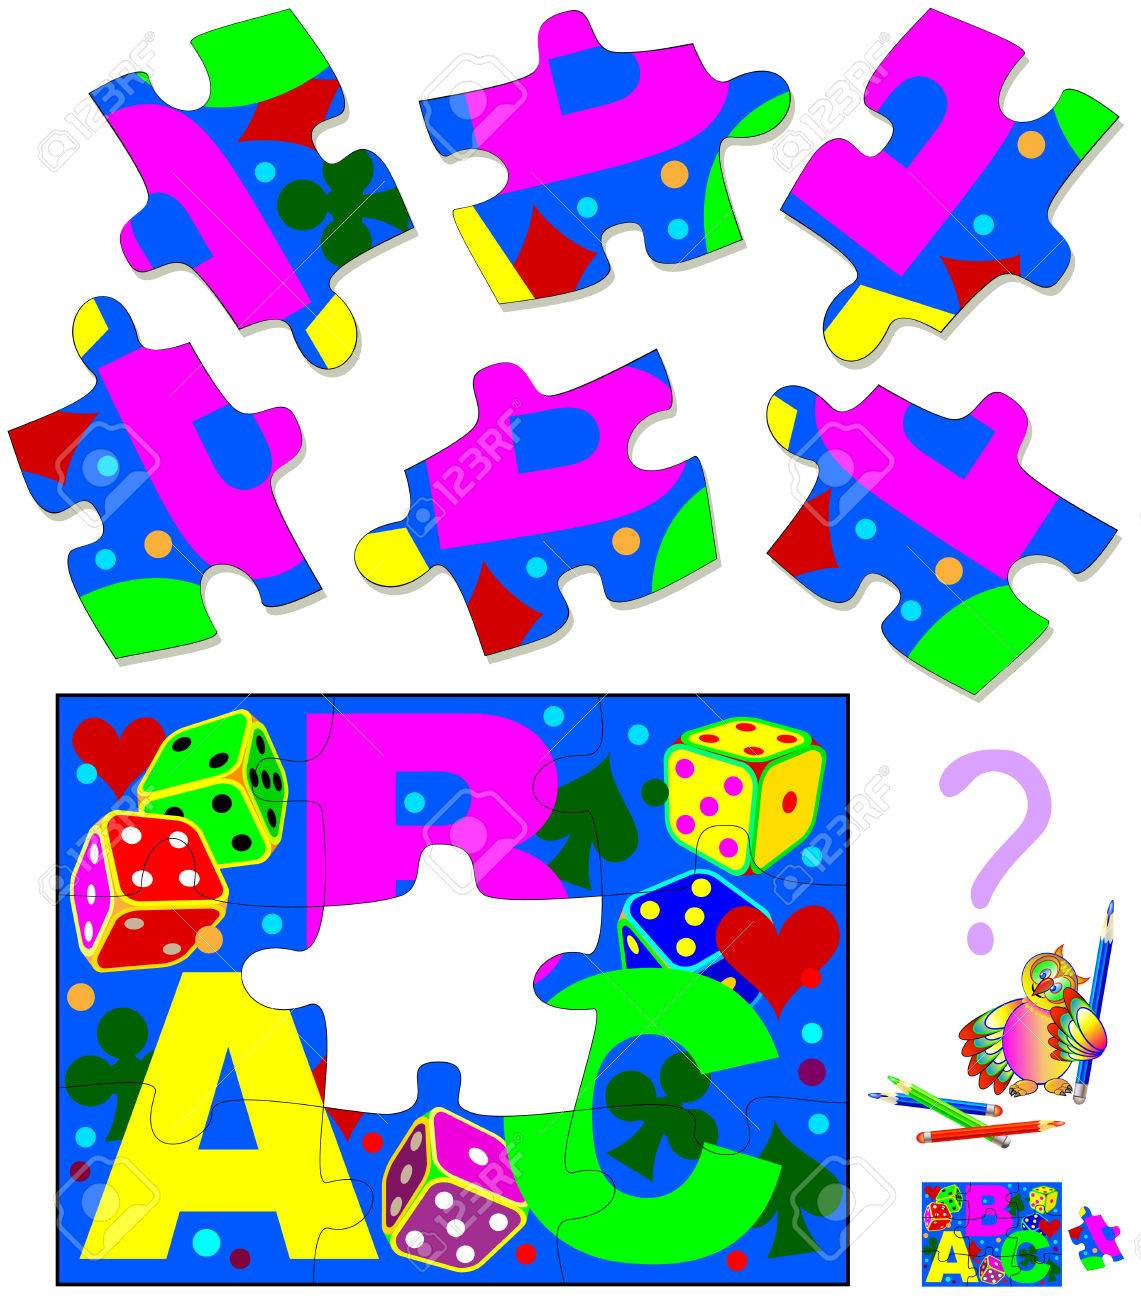 Logic puzzle. Find and draw the only one piece that corresponds to picture. Vector cartoon image. - 69774532